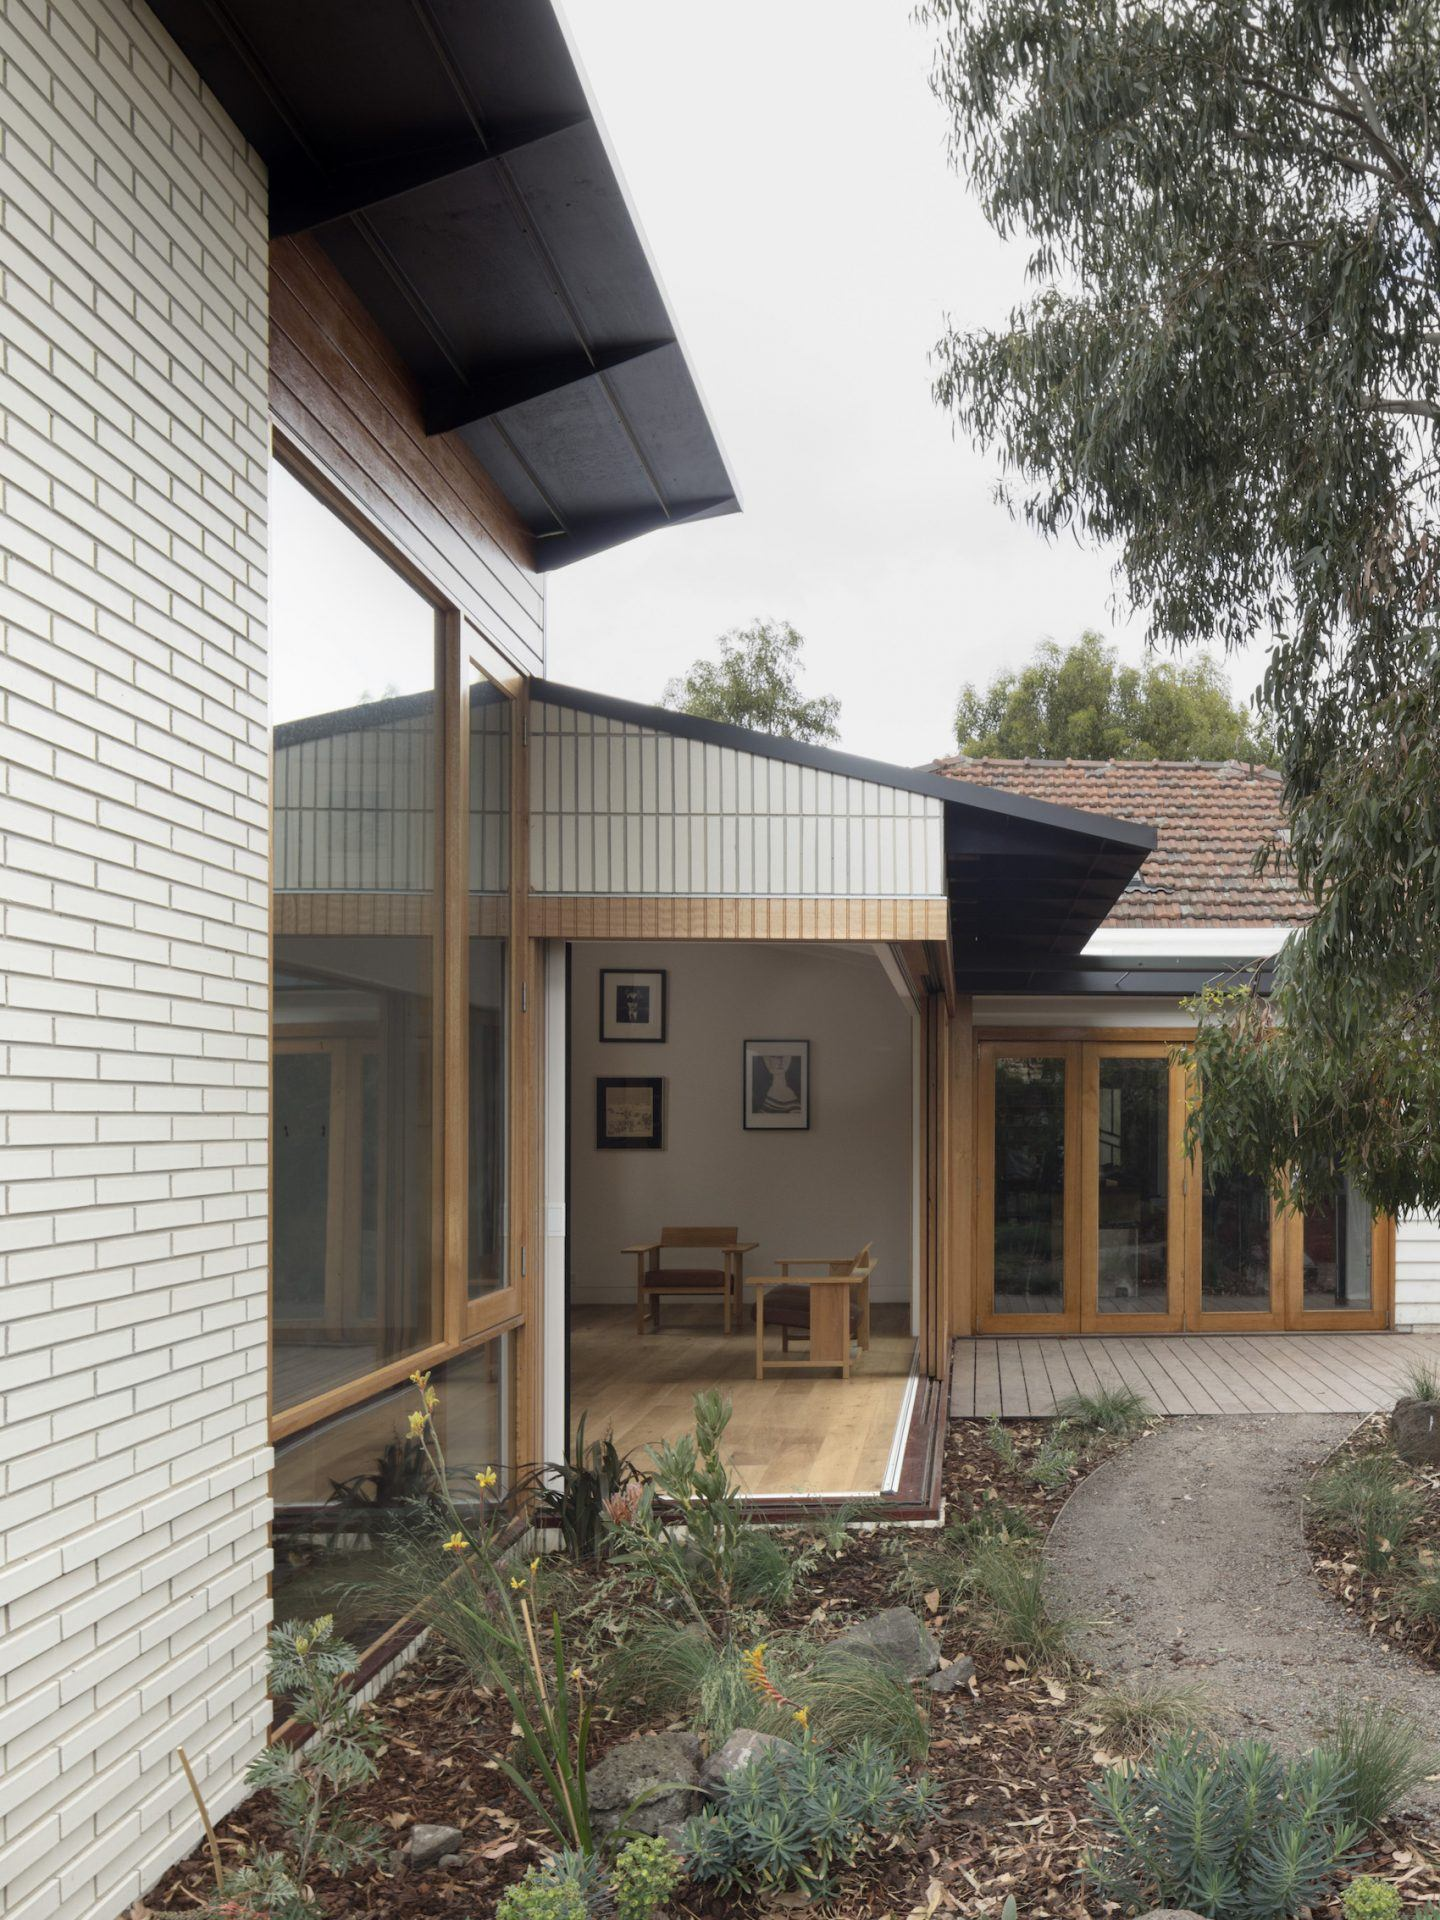 IGNANT-Architecture-Winwood-Mckenzie-Architecture-Brunswick-House-14